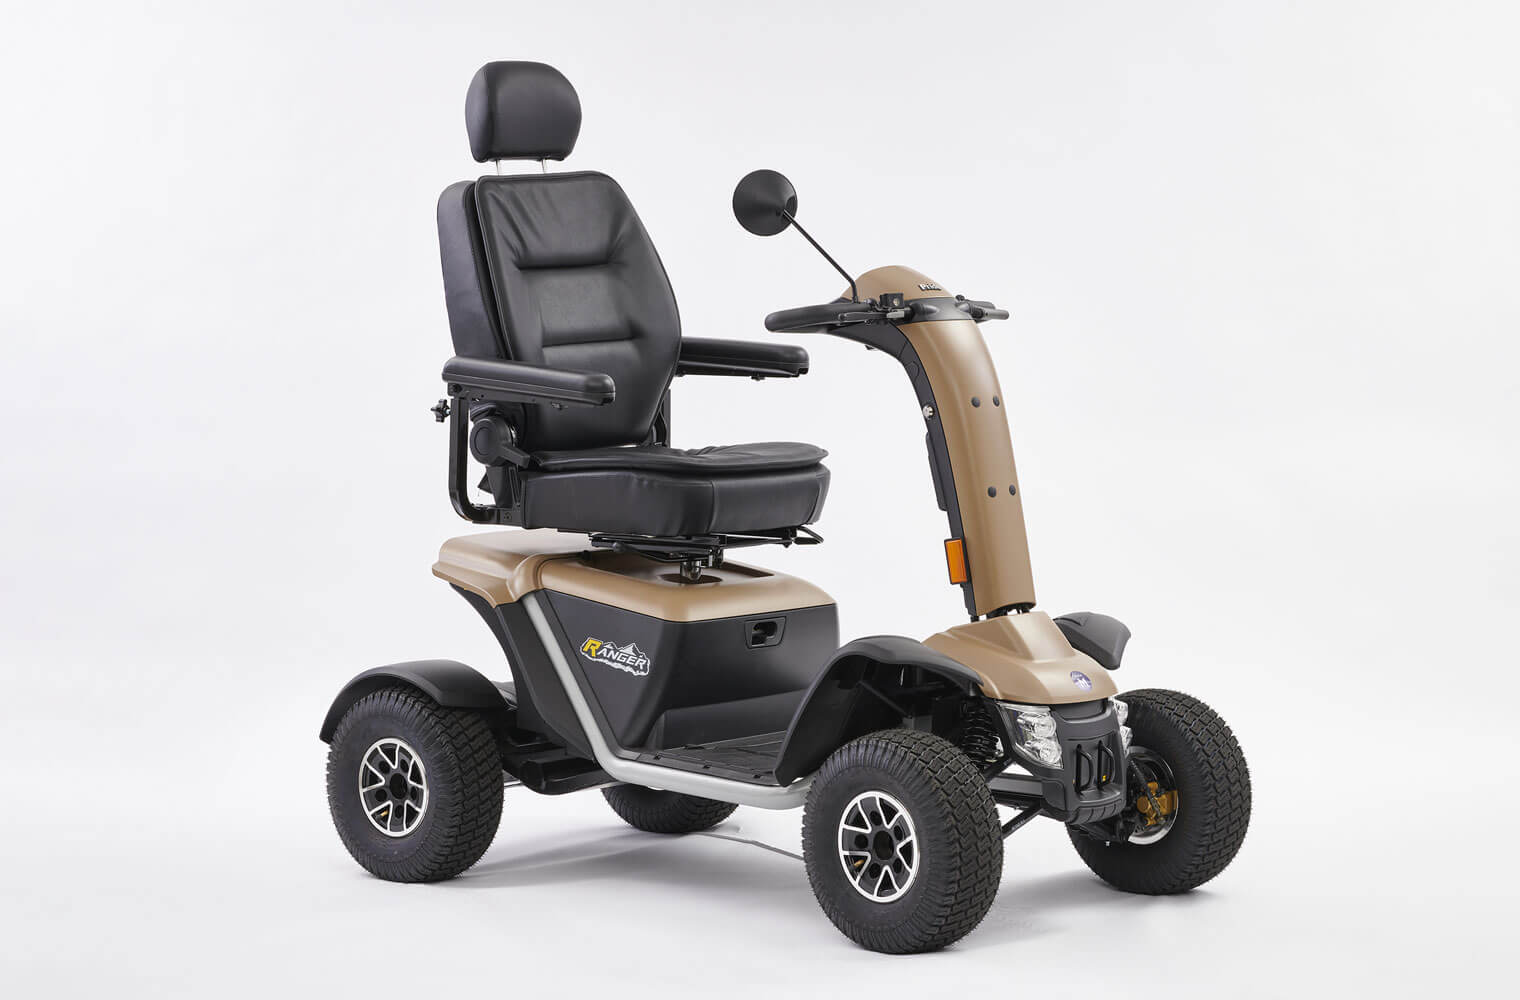 An image of Ranger 8mph Road Mobility Scooter from Middletons Grey